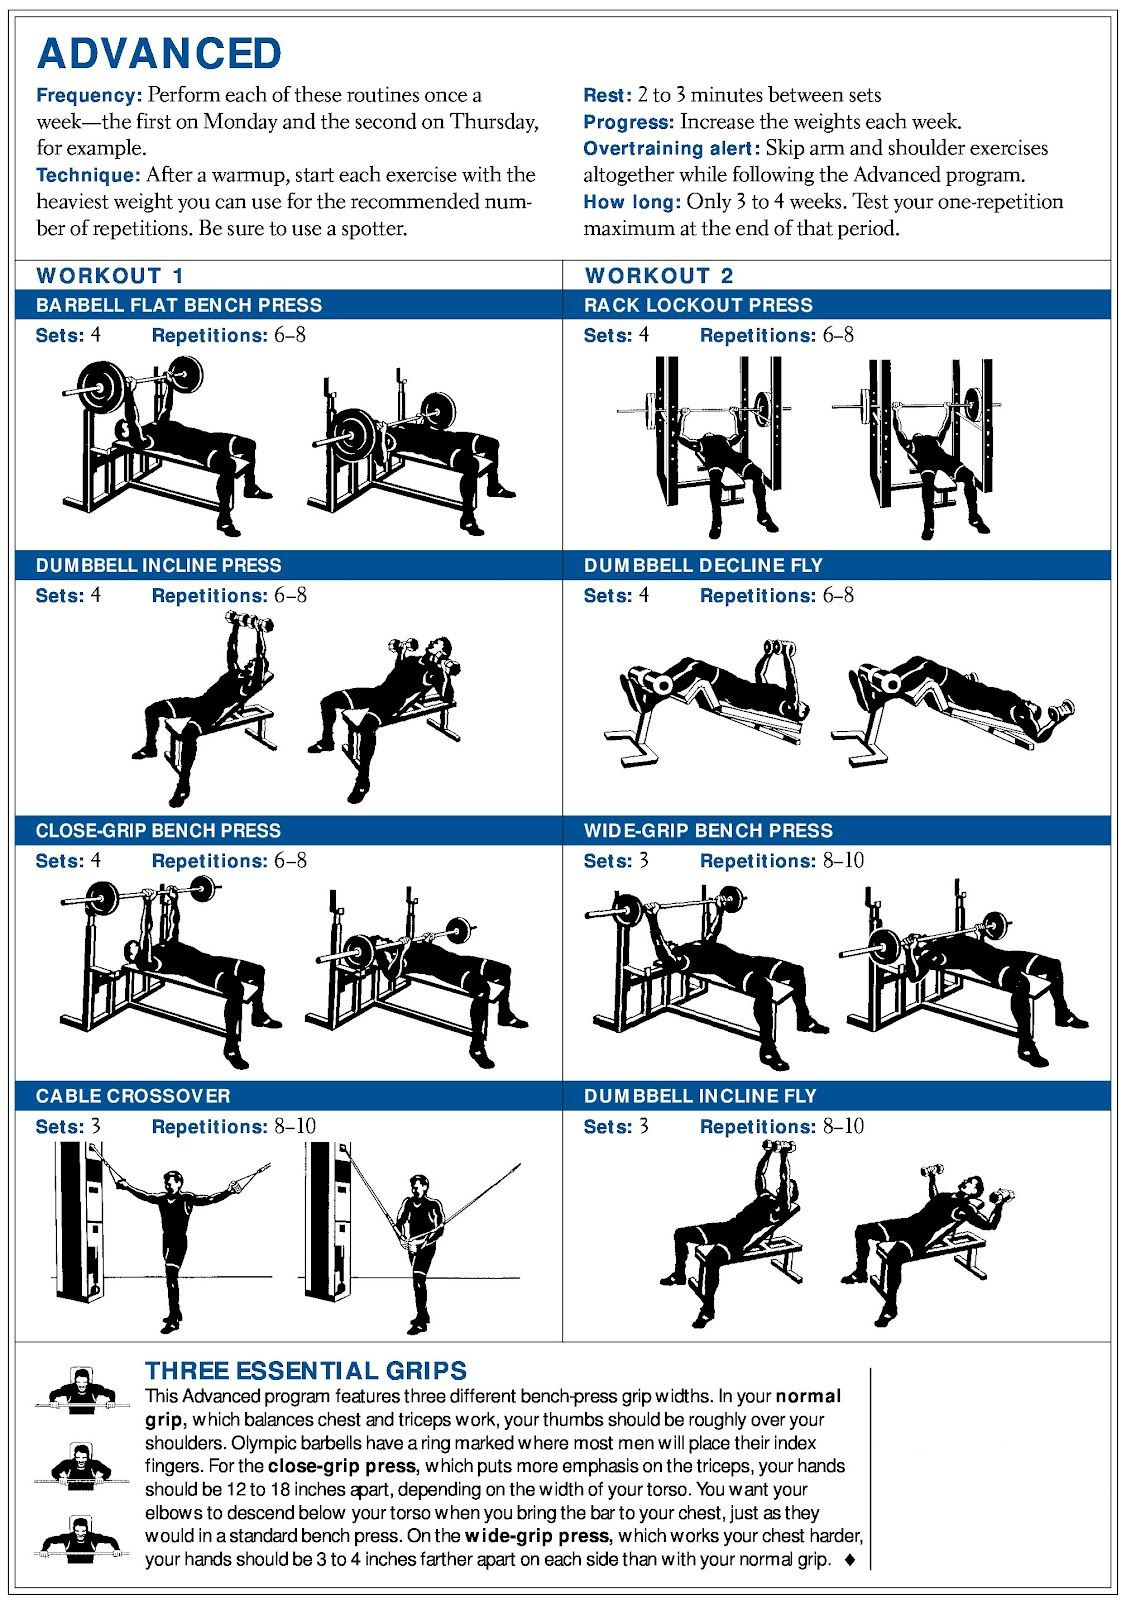 Printable Sample Chest Workout Form  Workout Sheet